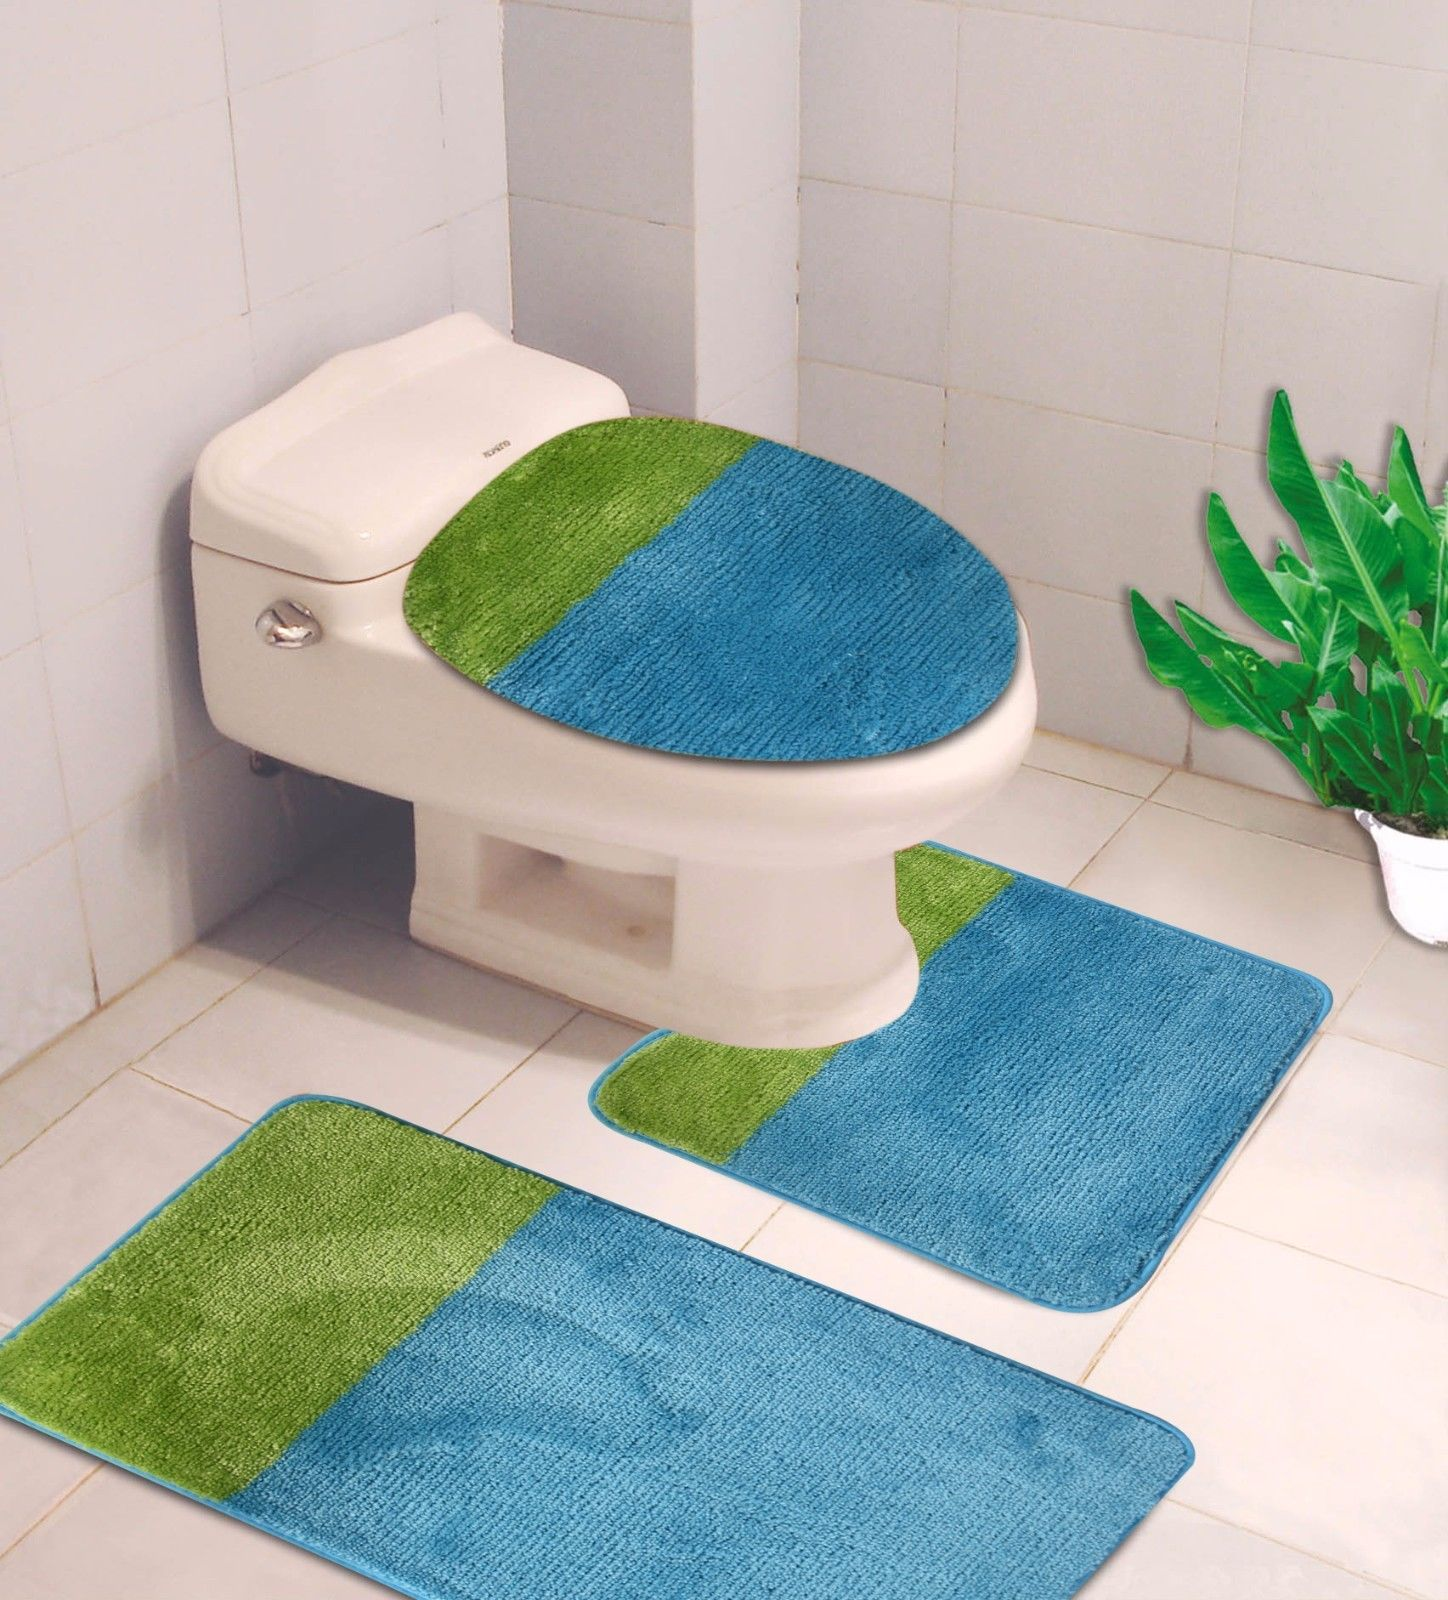 """3-PC (#7) Turquoise/Lime HIGH QUALITY Jacquard Bathroom Bath Rug Set Washable Anti Slip Rug 18""""x28"""", Contour Mat 18""""x18"""" and Toilet Seat Lid Cover 18""""x19"""" with Non-Skid Rubber Back"""